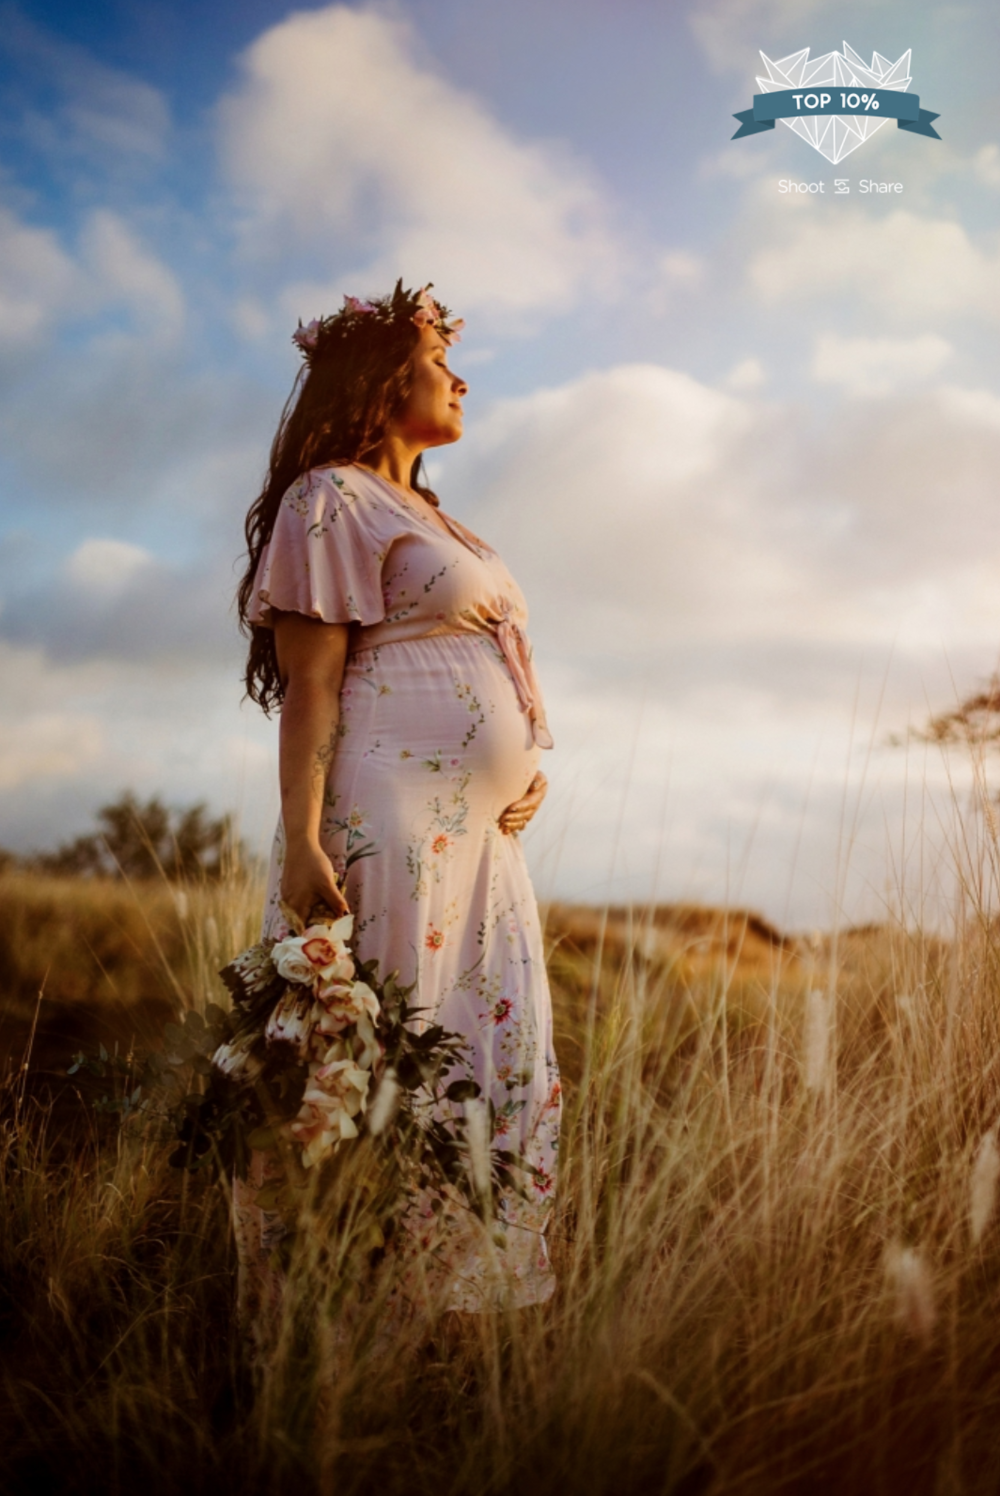 Shoot-Share-Contest-2018-Hawaii-Top-10-Maternity-photographer.png